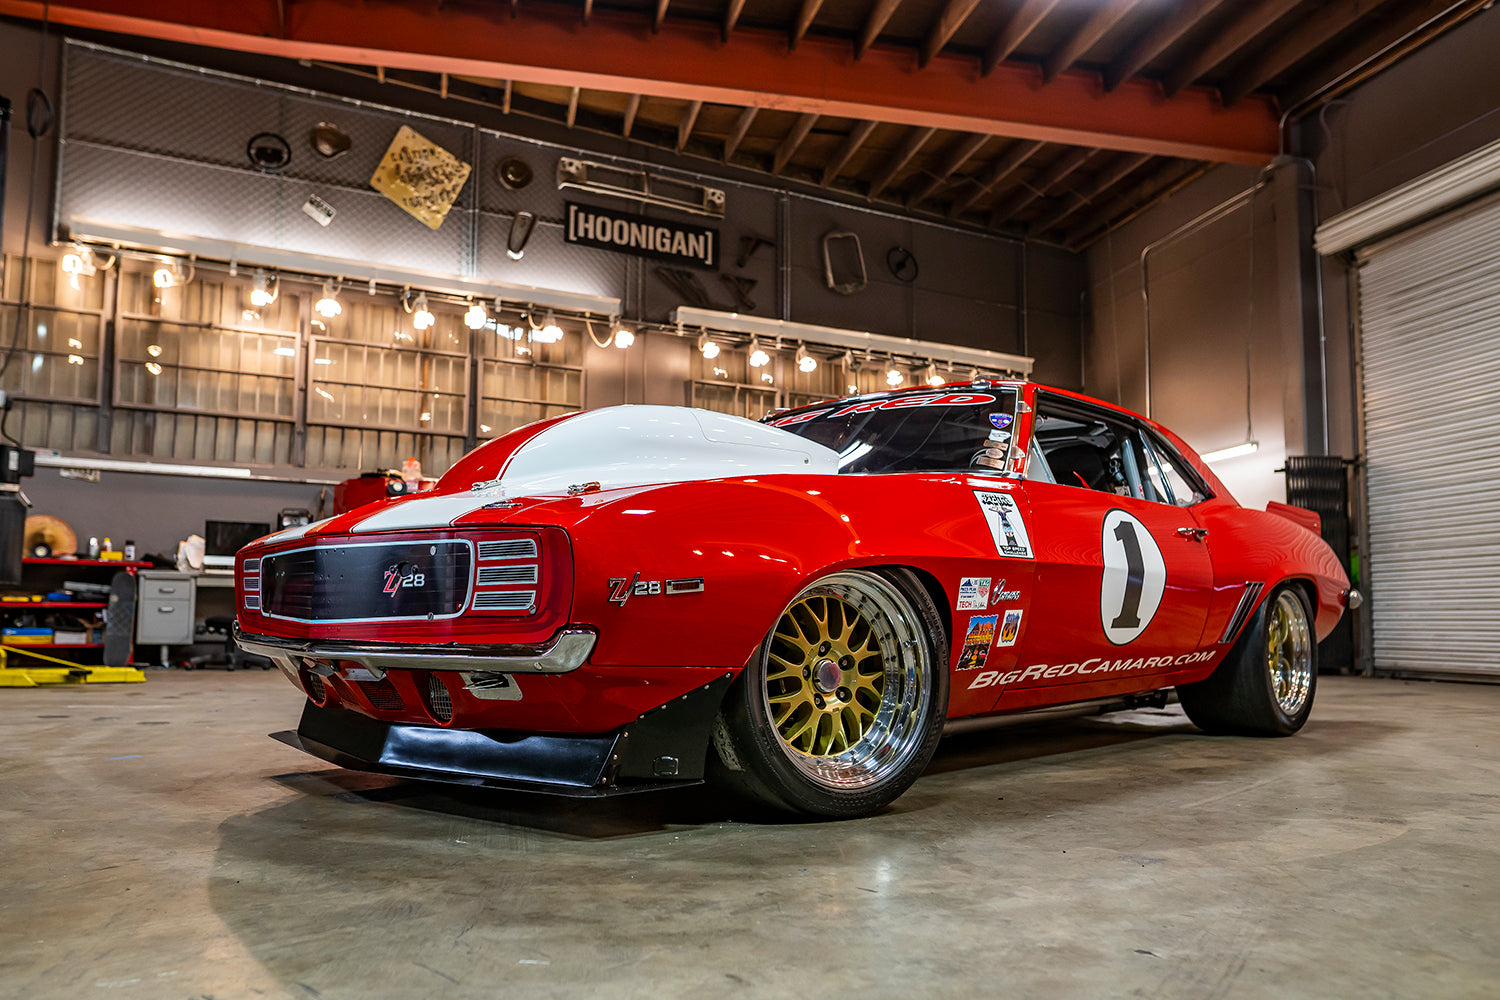 2000hp 251mph Big Red 1969 Camaro The Greatest Pro Touring Car Ever B Hoonigan